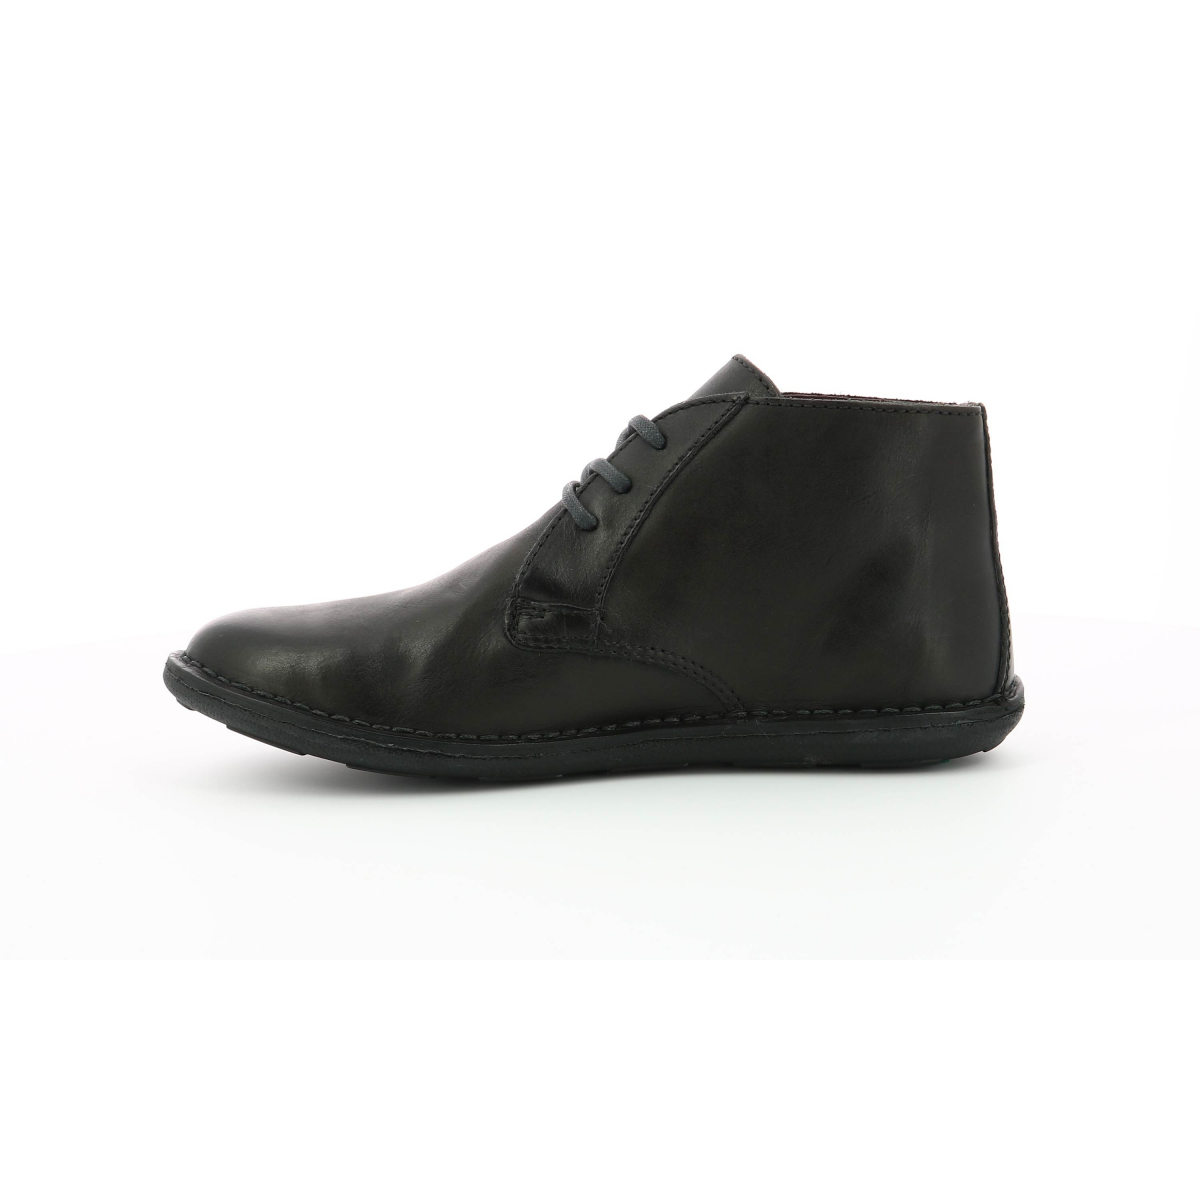 bff058d0 Chaussures Homme Swibo Noir - Chaussures Kickers - Kickers